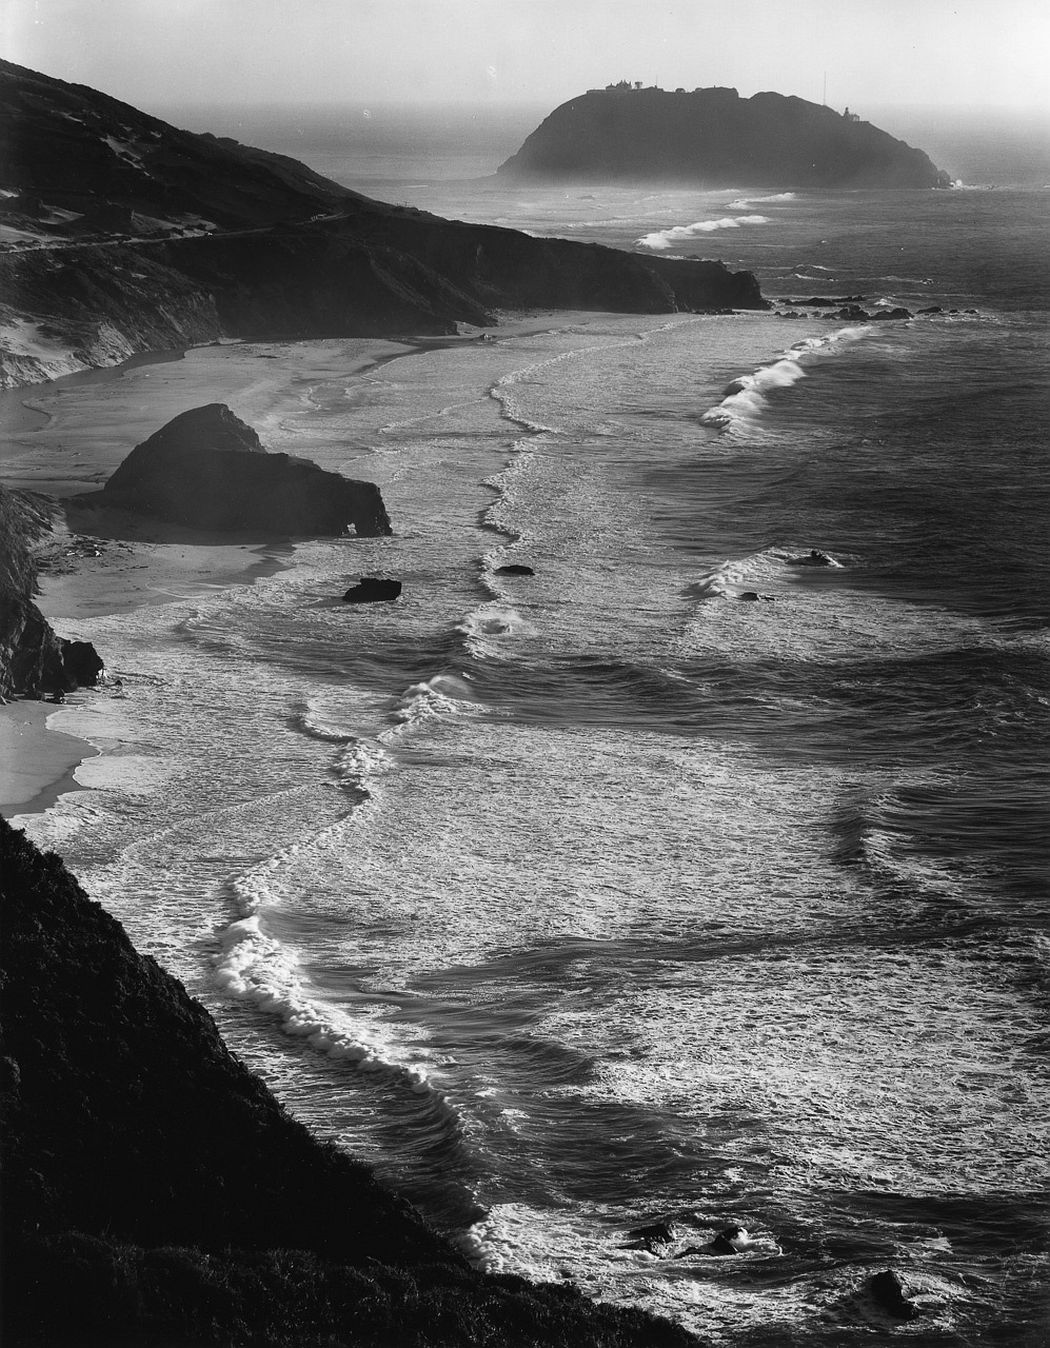 Ansel Adams. Point Sur, Storm, Big Sur, CA, 1946. Images printed courtesy of the Ansel Adams Publishing Rights Trust